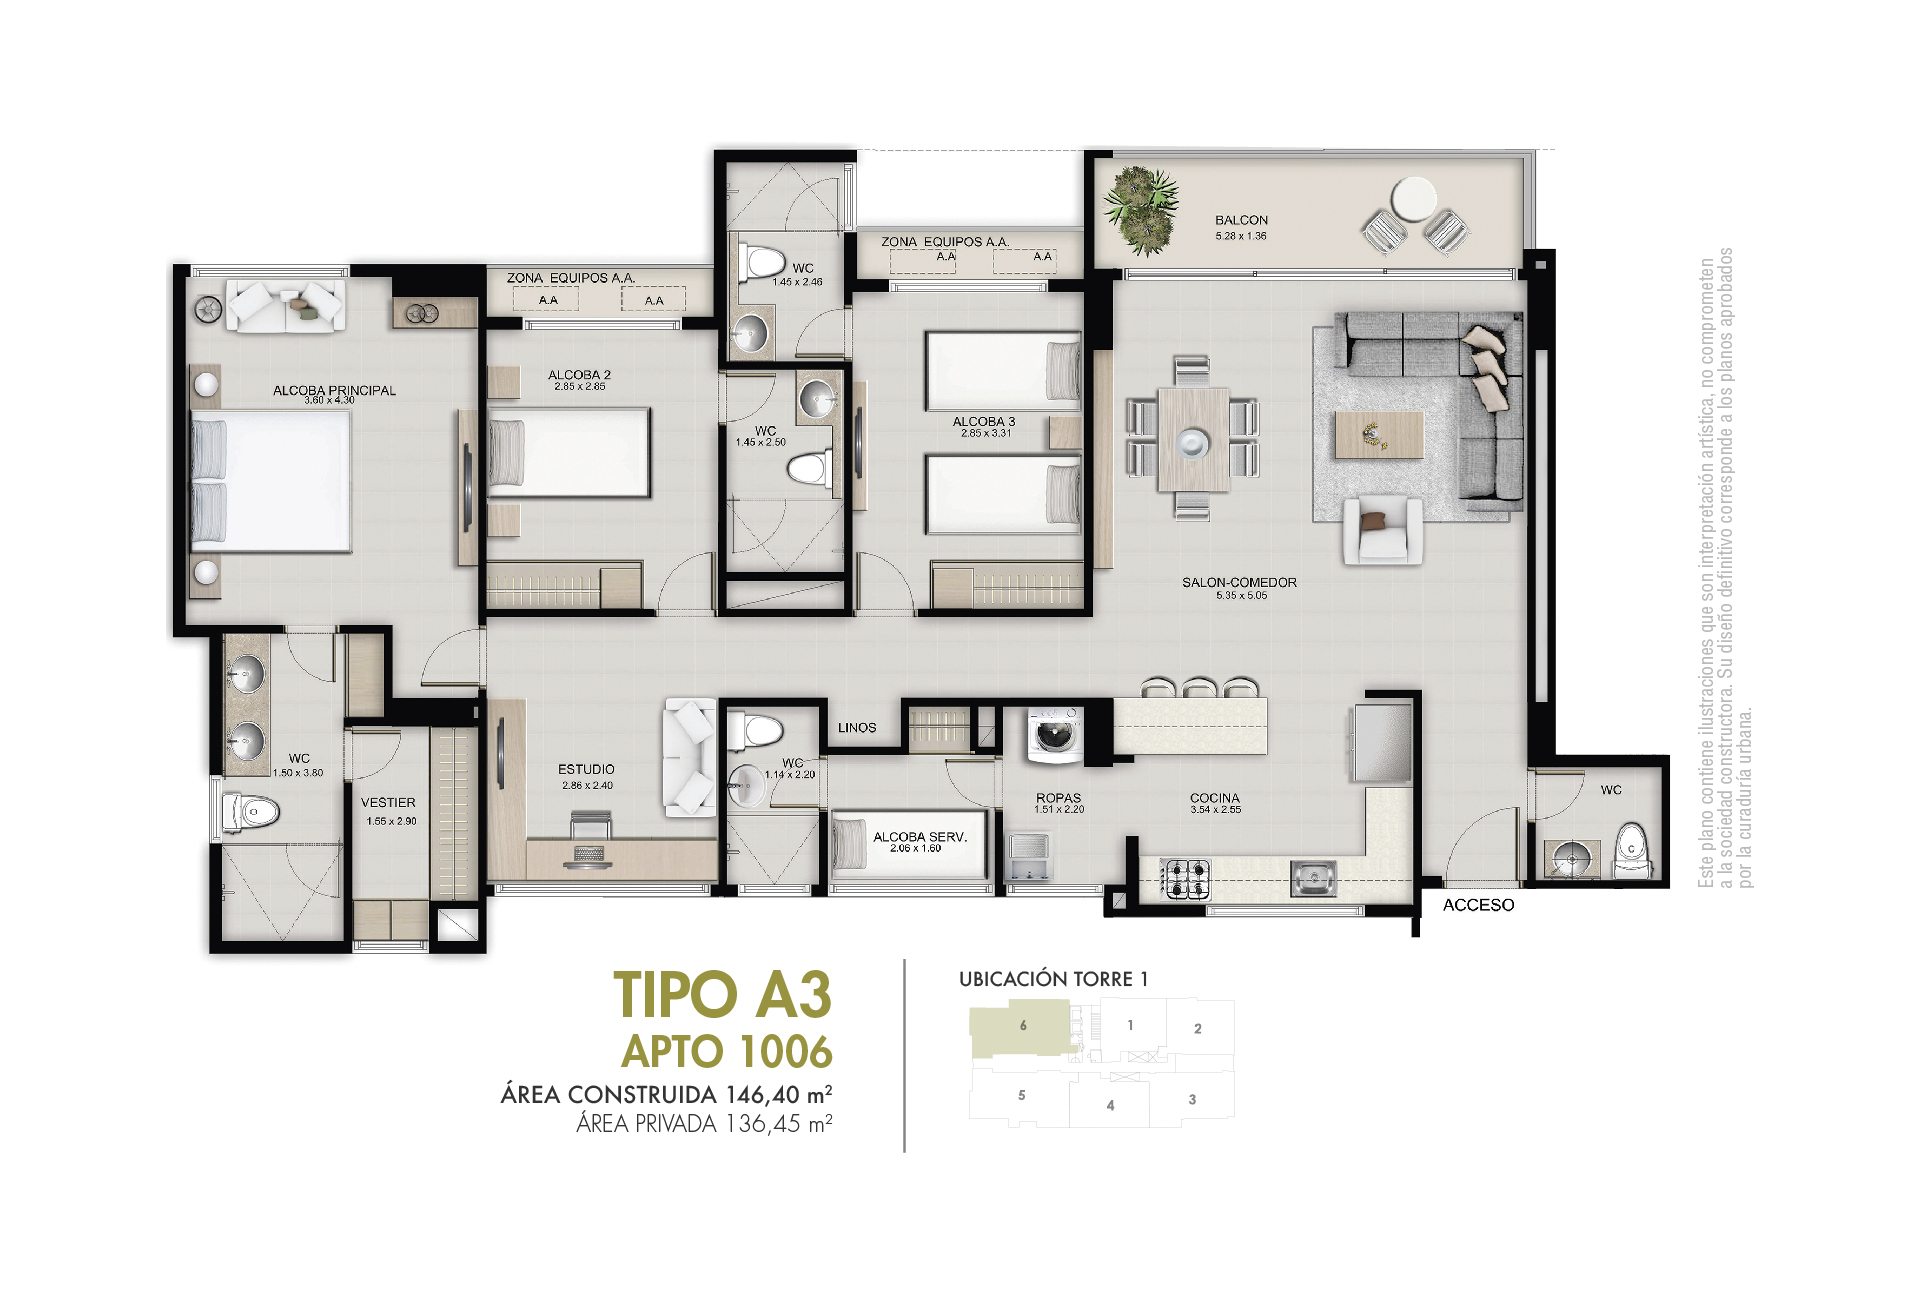 Tipo A3 136,45 m2